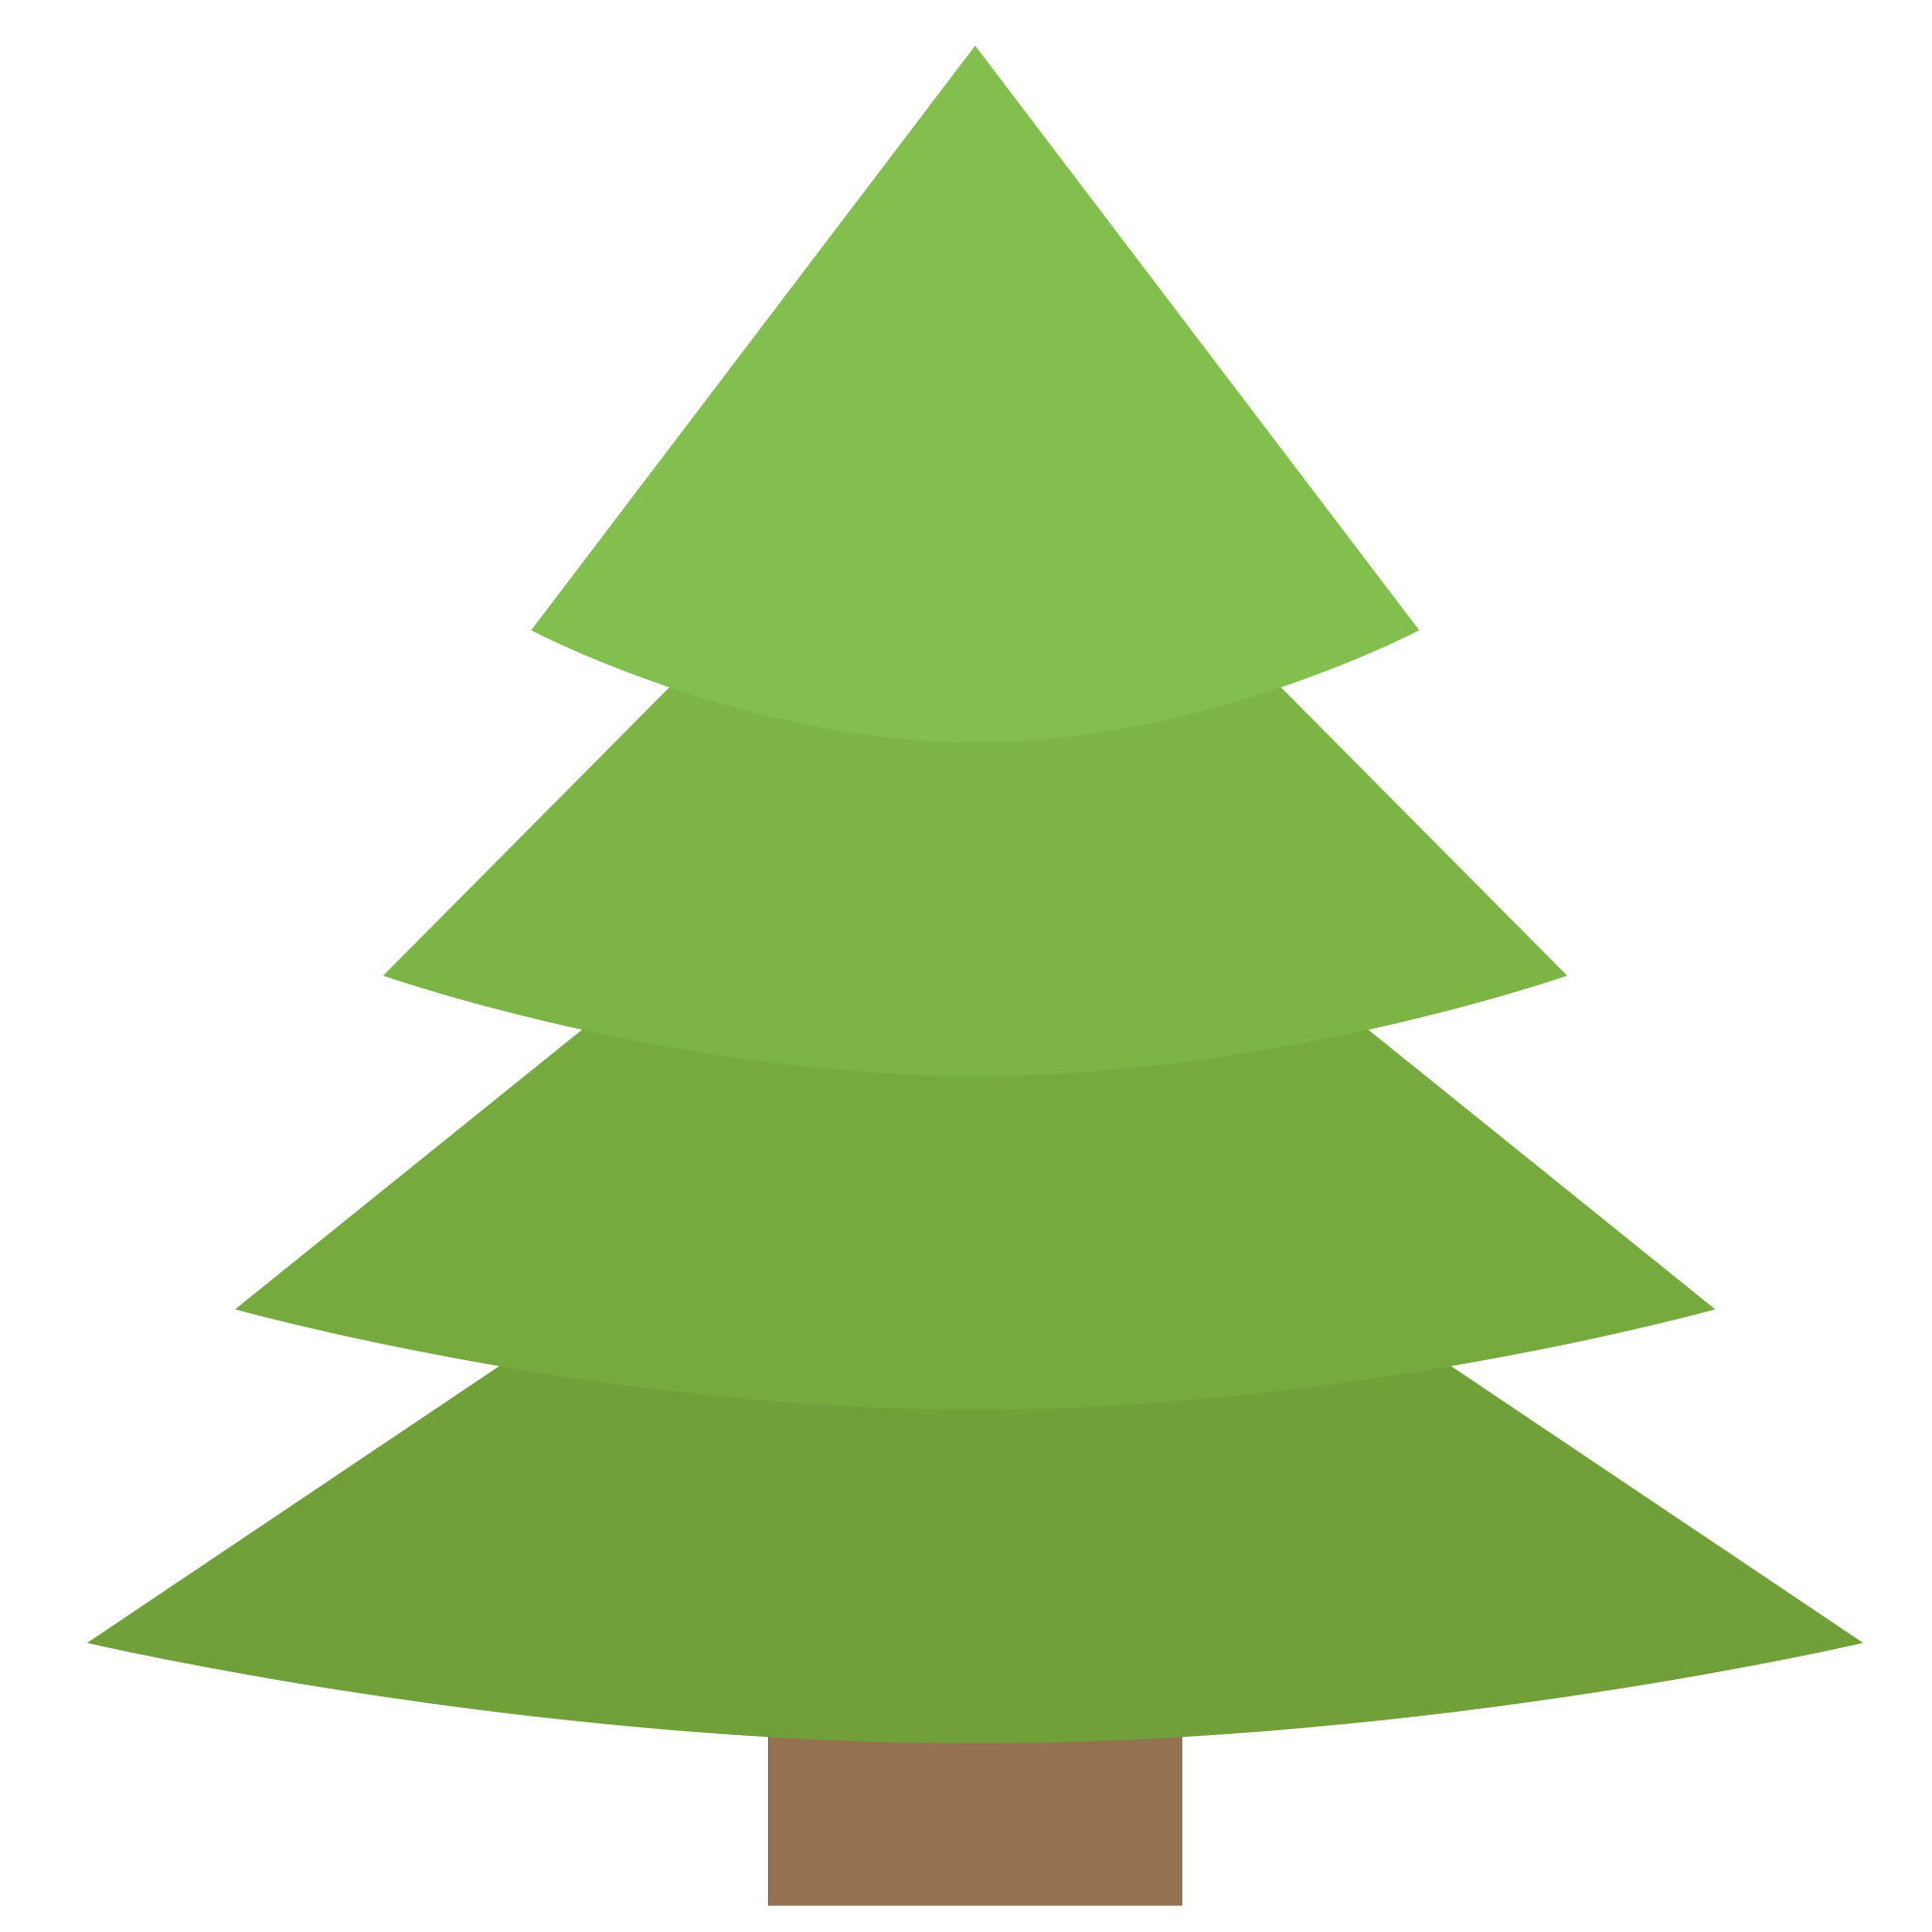 Undecorated christmas tree clipart clip freeuse download Iron On T Shirt Transfers - Custom Clothing | MYOG clip freeuse download